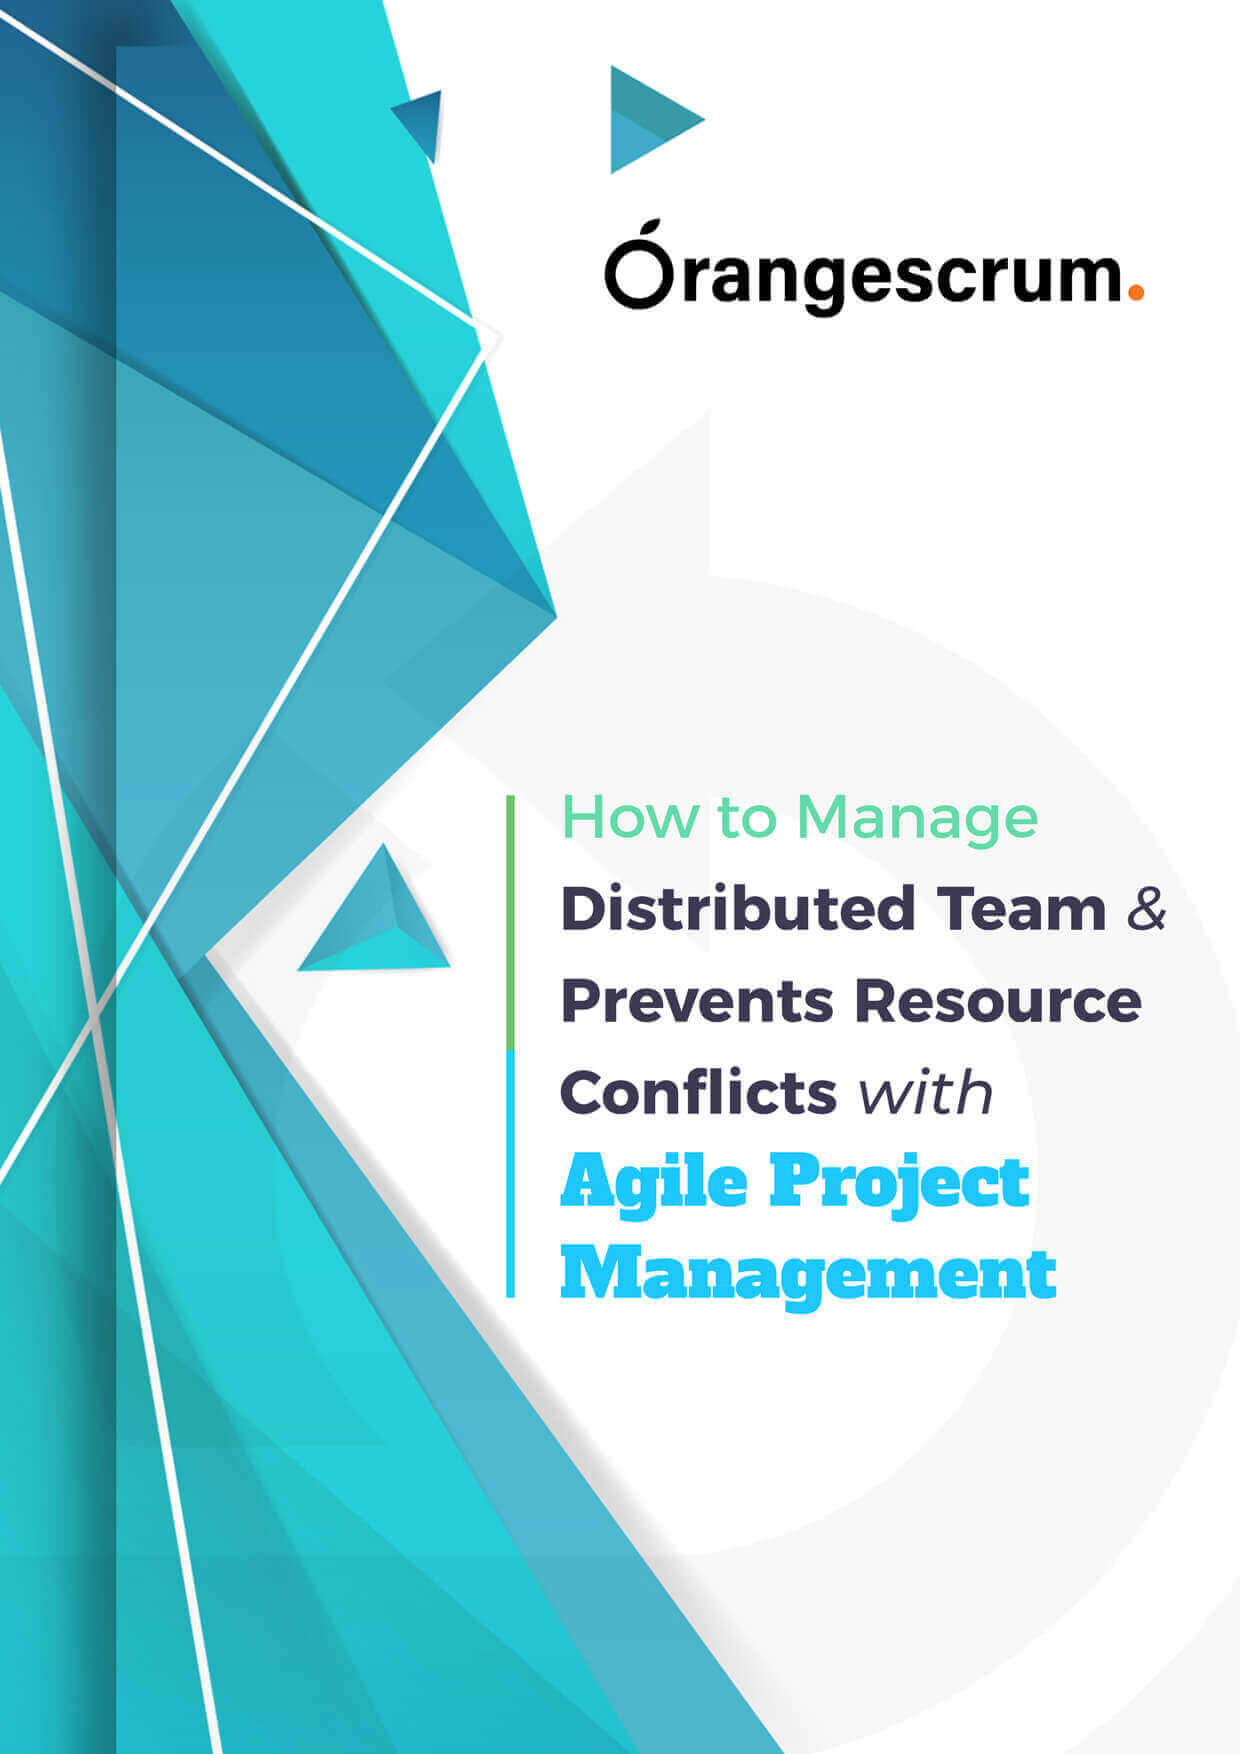 How to Manage Distributed Team & Prevents Resource Conflicts with Agile Project Management